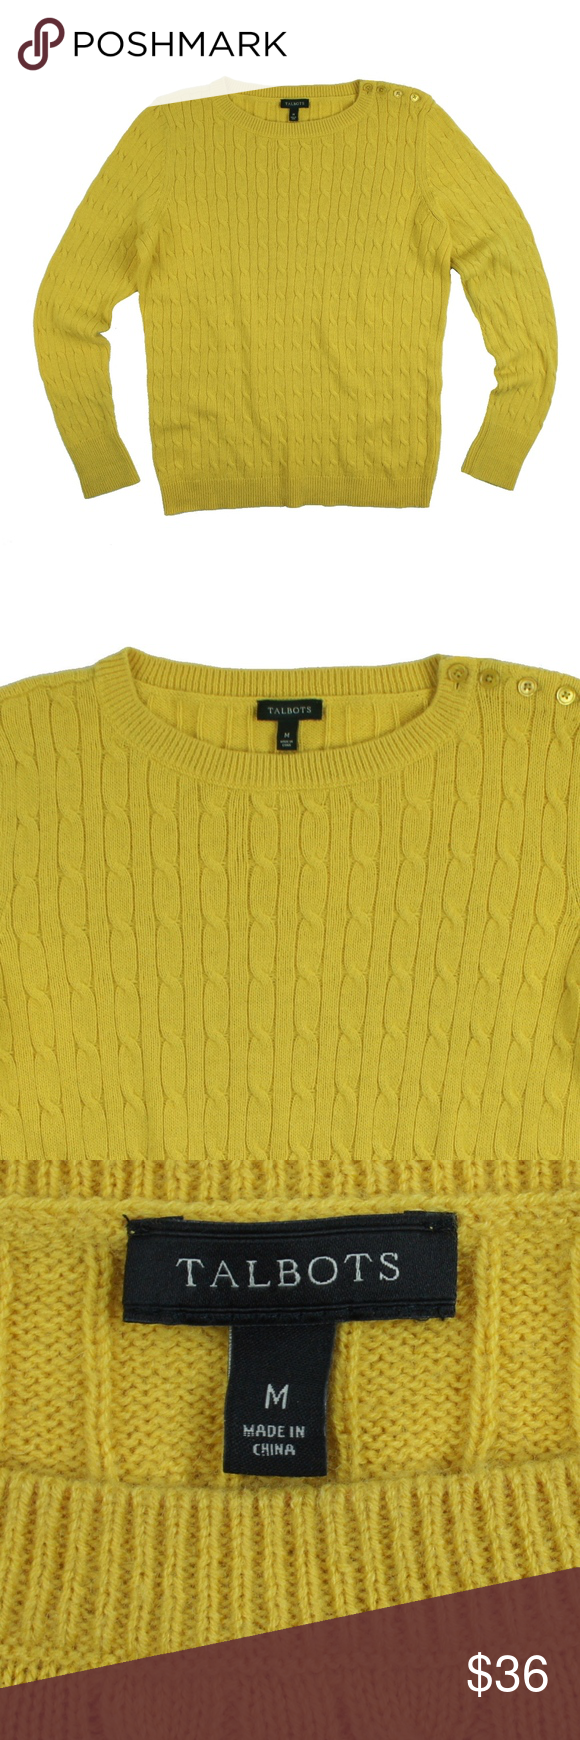 TALBOTS Golden Mustard Shoulder Button Sweater | Cable knit ...